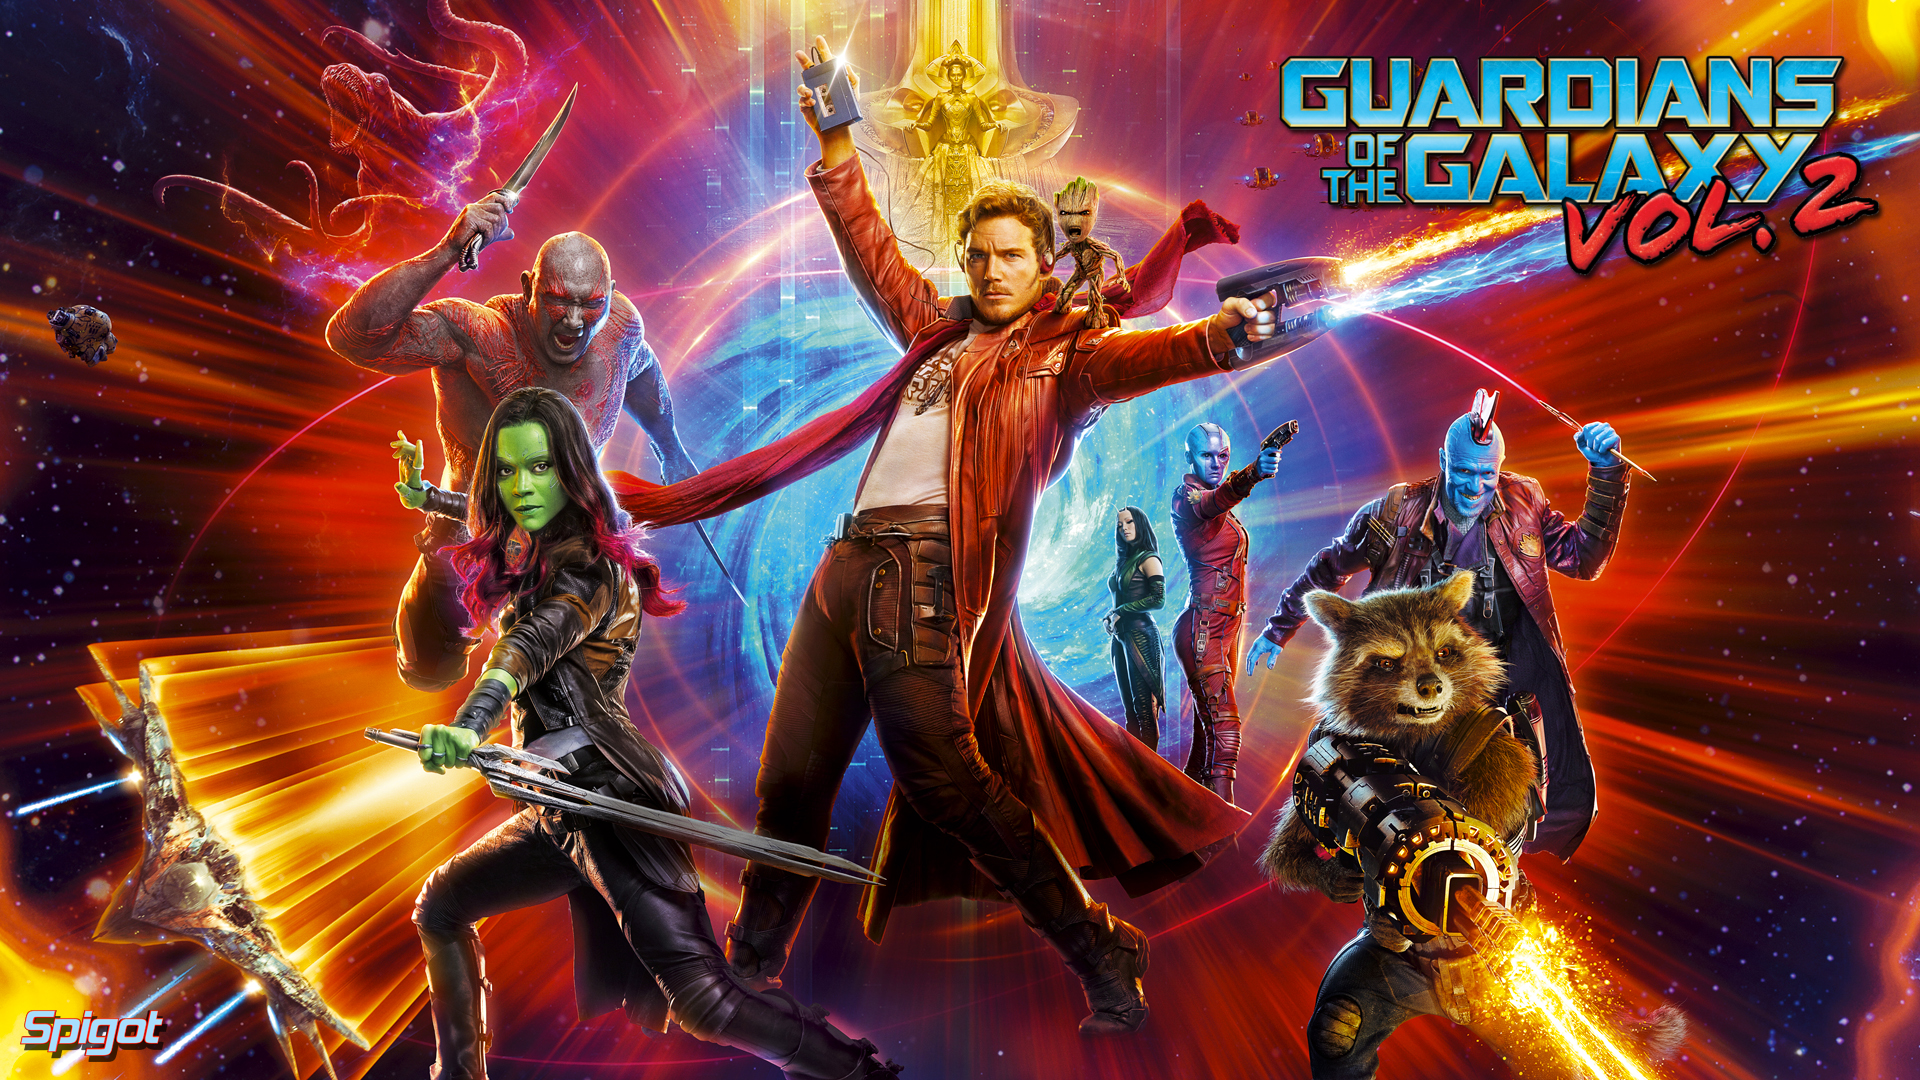 guardians-of-the-galaxy-vol-2-041